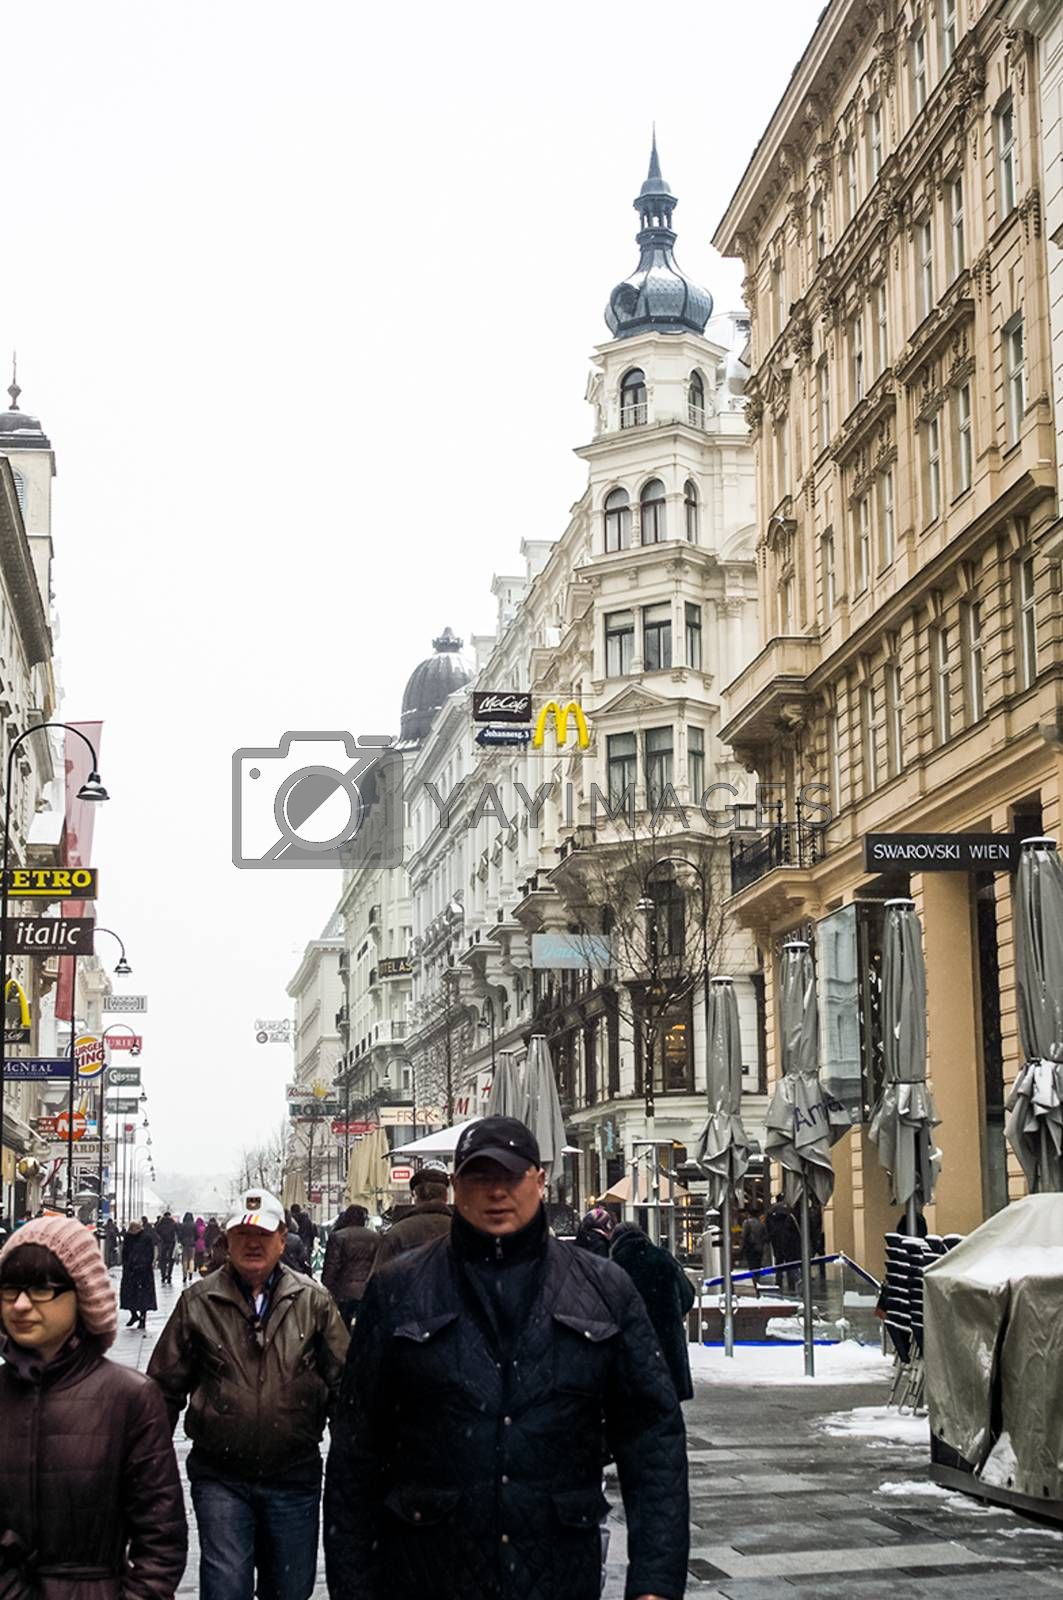 Sights of Vienna, buildings and streets of the city of Vienna by avstraliavasin